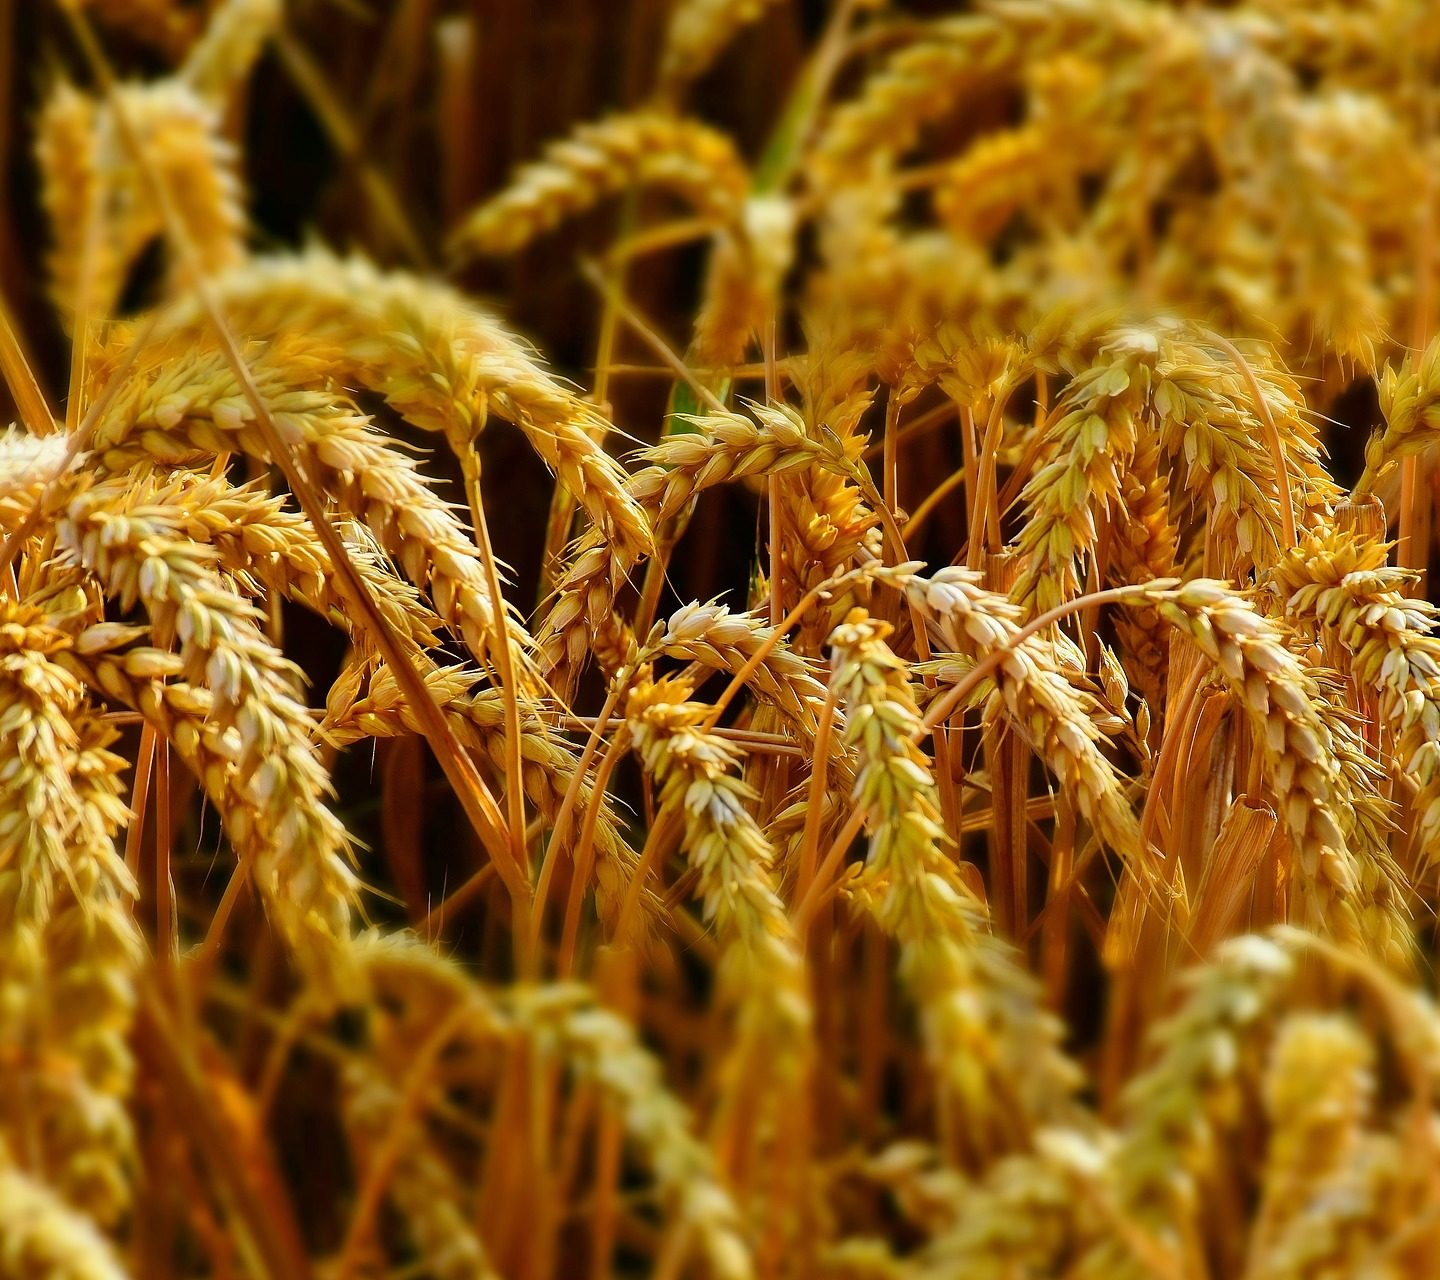 Argentina first in the world to approve drought tolerant HB4® Wheat